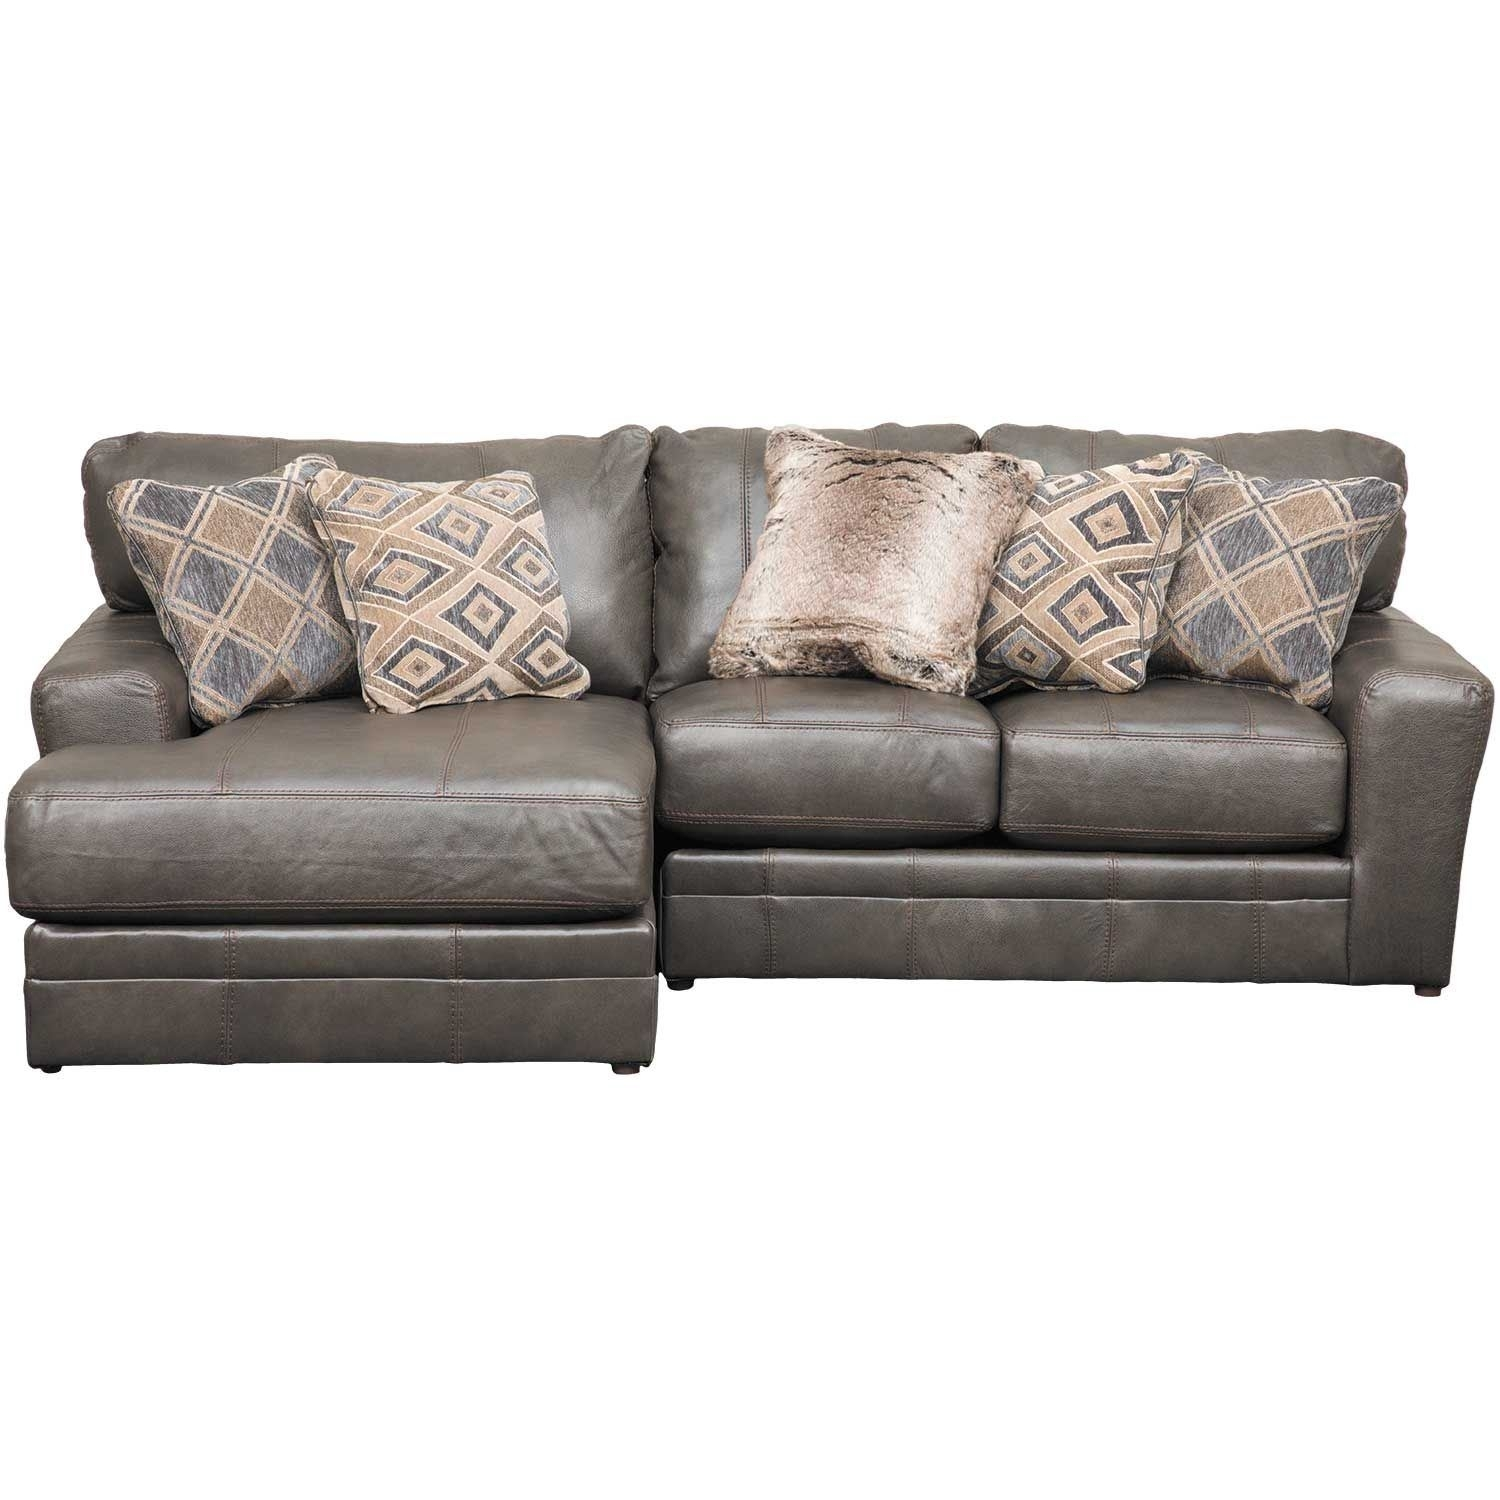 Denali 2 Piece Italian Leather Sectional With Laf Chaise | 4378-75 inside Cosmos Grey 2 Piece Sectionals With Laf Chaise (Image 12 of 30)